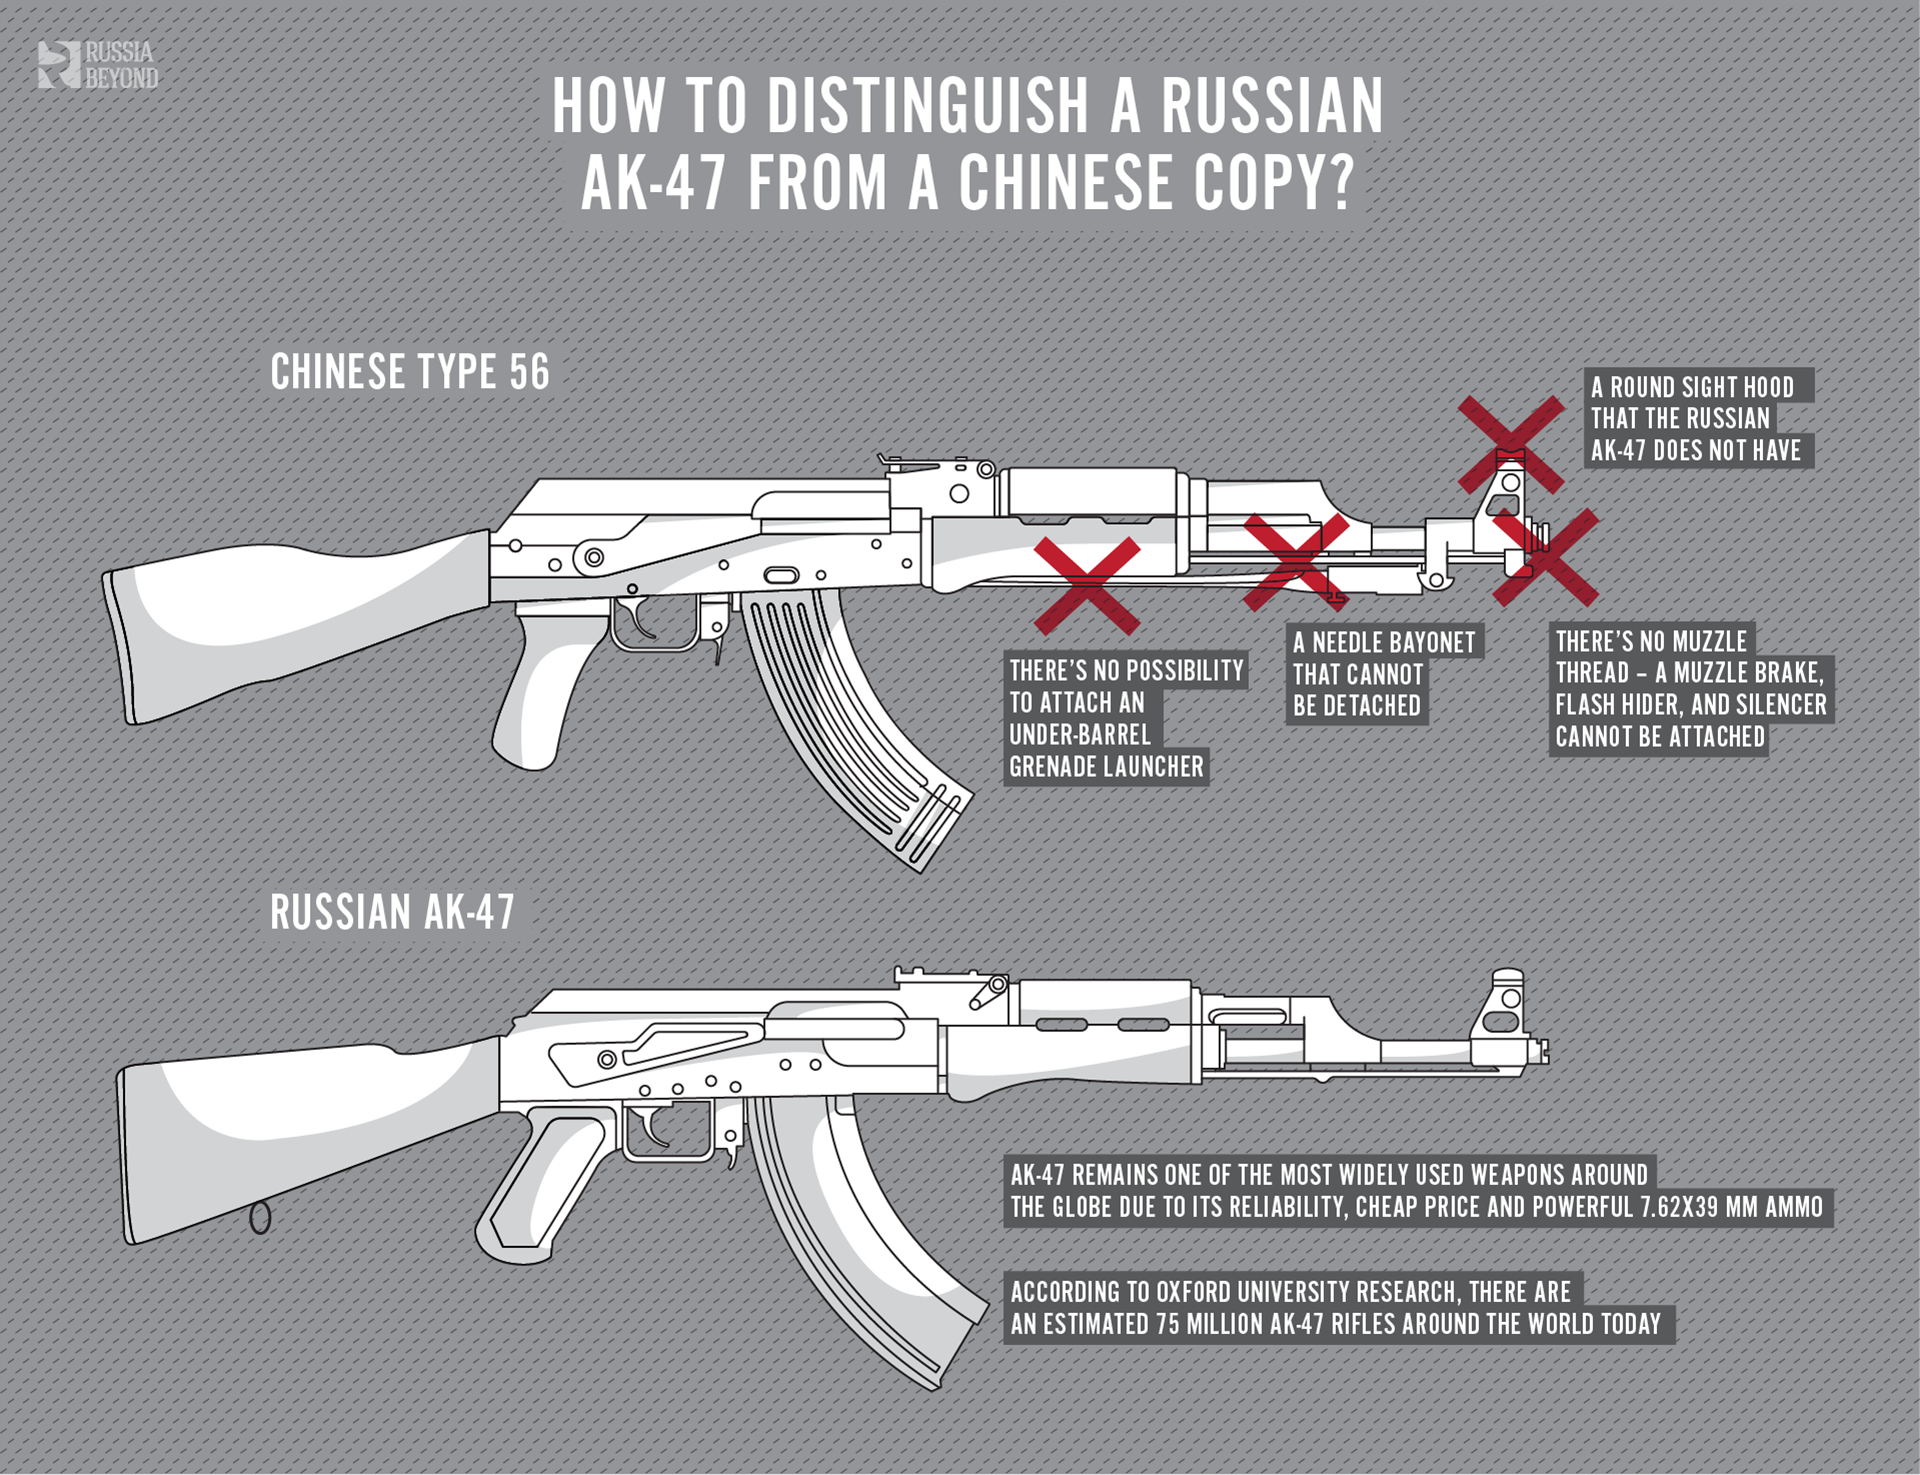 How to distinguish a Russian AK-47 from a Chinese copy